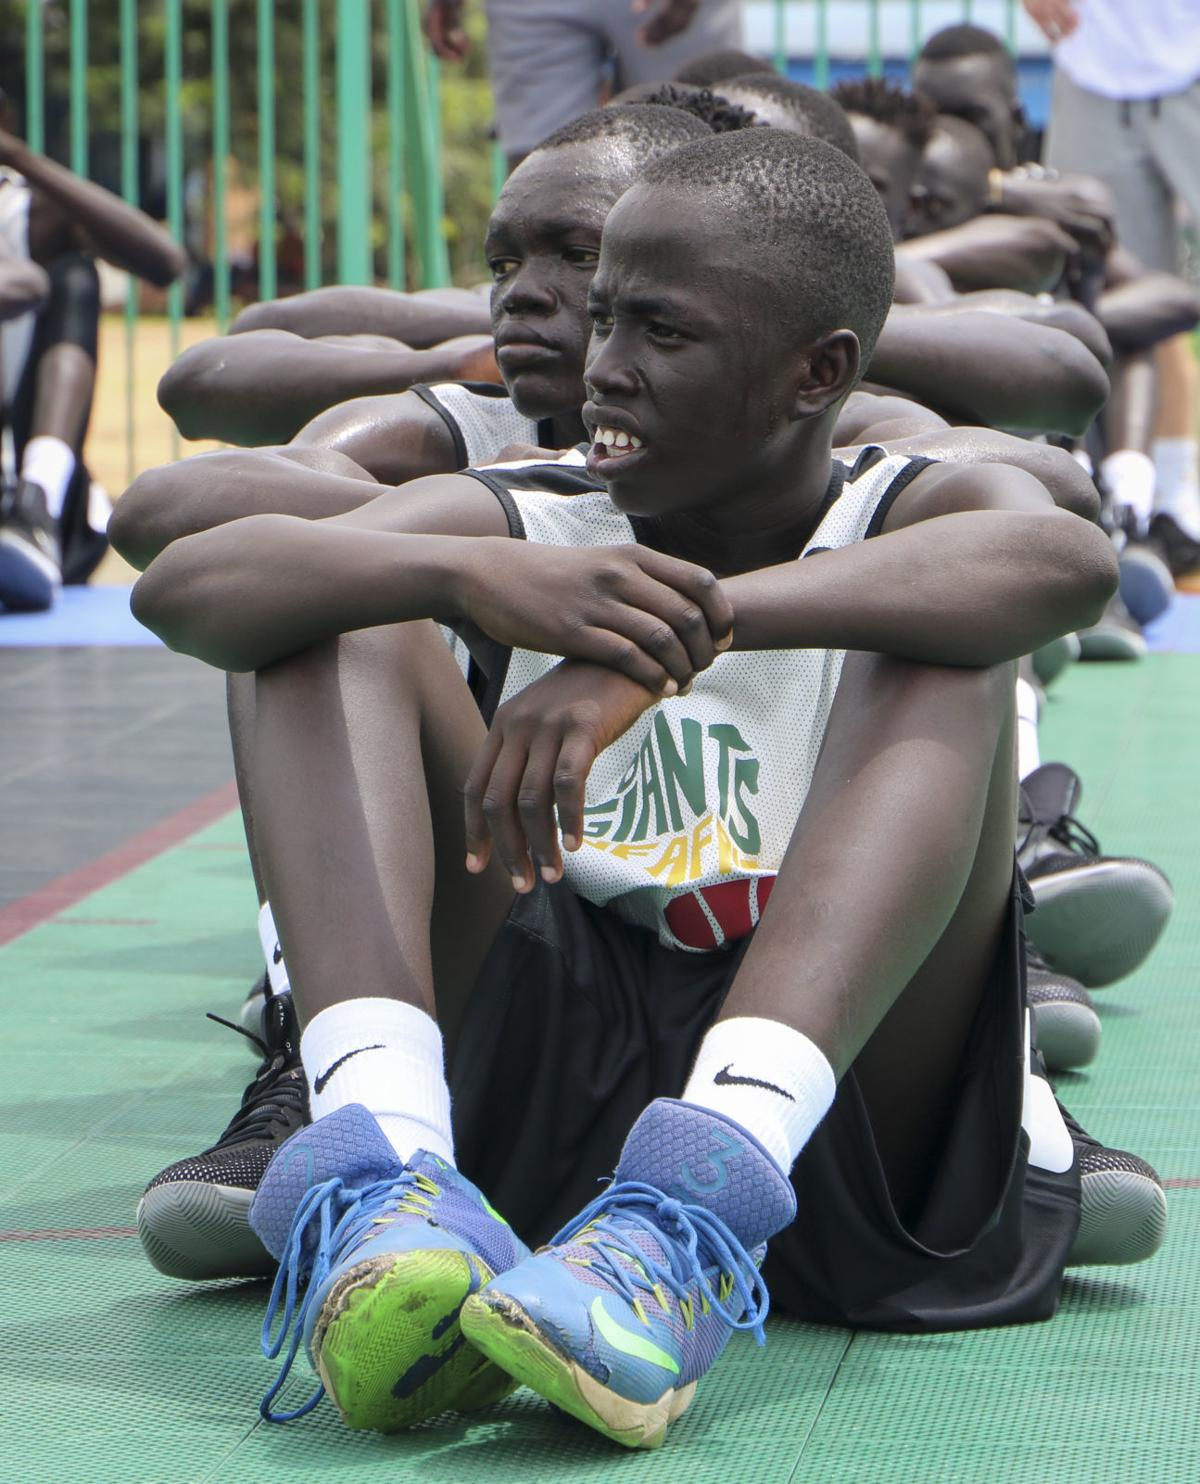 Players sit in rows during a break at a three-day basketball training camp run by Giants of Africa in Juba, South Sudan.— AP Photo/Sam Mednick